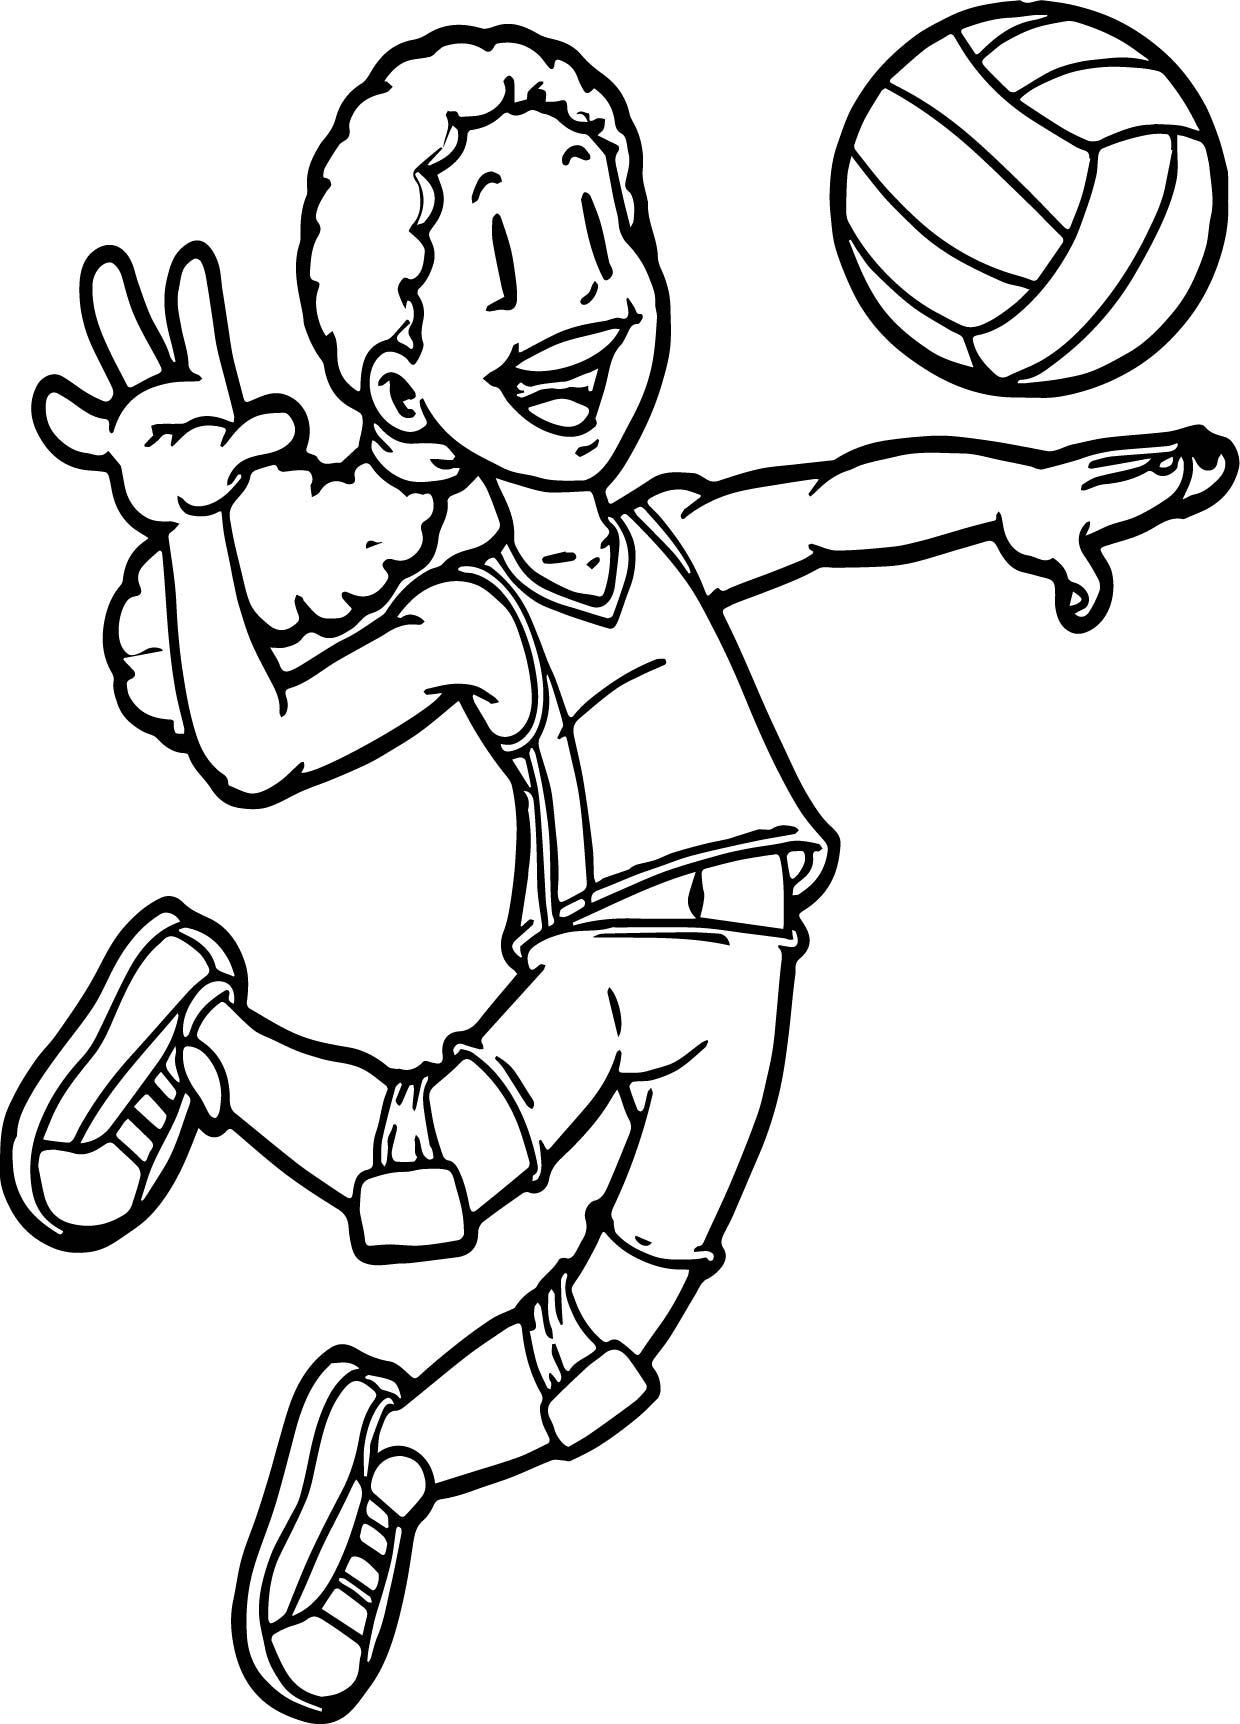 Awesome Kids Playing Sports Volleyball Coloring Page With Images